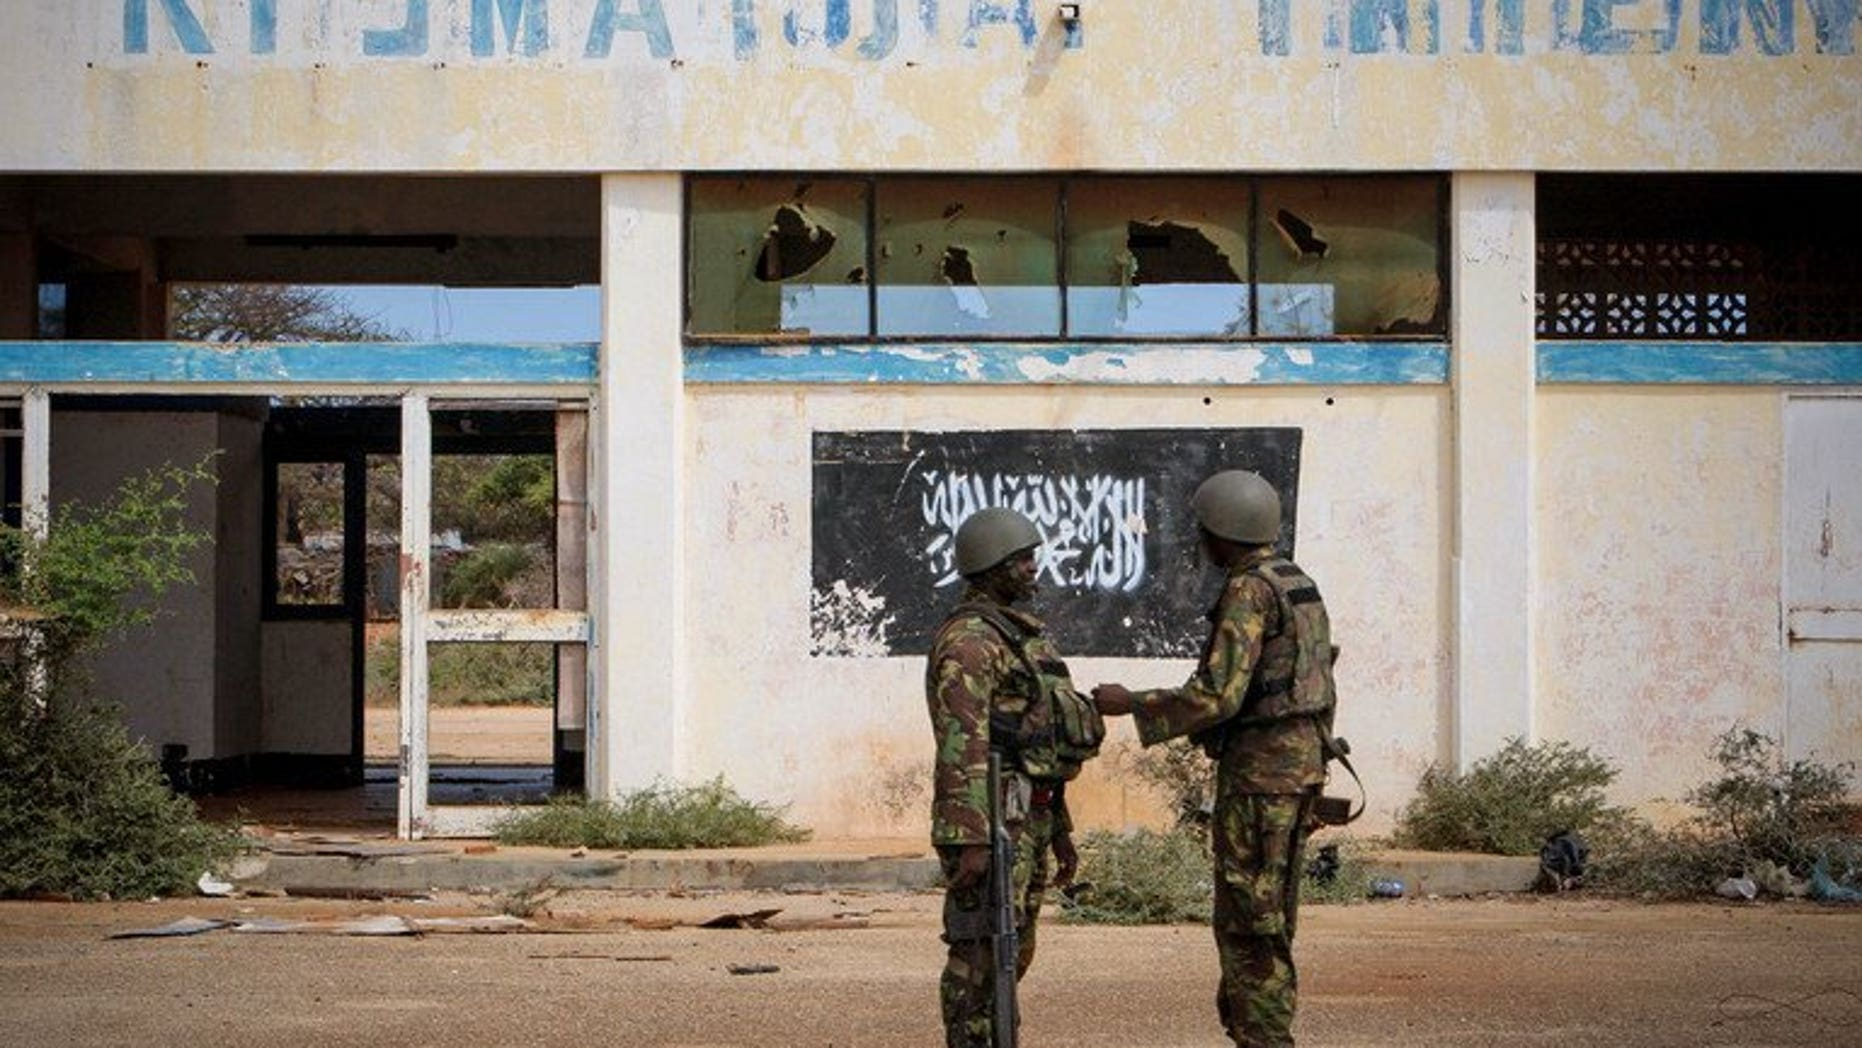 Photo released by the AU-UN Information Support Team on October 2, 2012 shows soldiers of the Kenyan contingent serving with the African Union Mission in Somalia near the black flag of the Al Qaeda-linked group Shebaab on the wall of Kismayo Airport. Somalia's government has demanded that Kenyan troops stationed in the volatile port city of Kismayo be replaced, accusing them of backing Shebab.